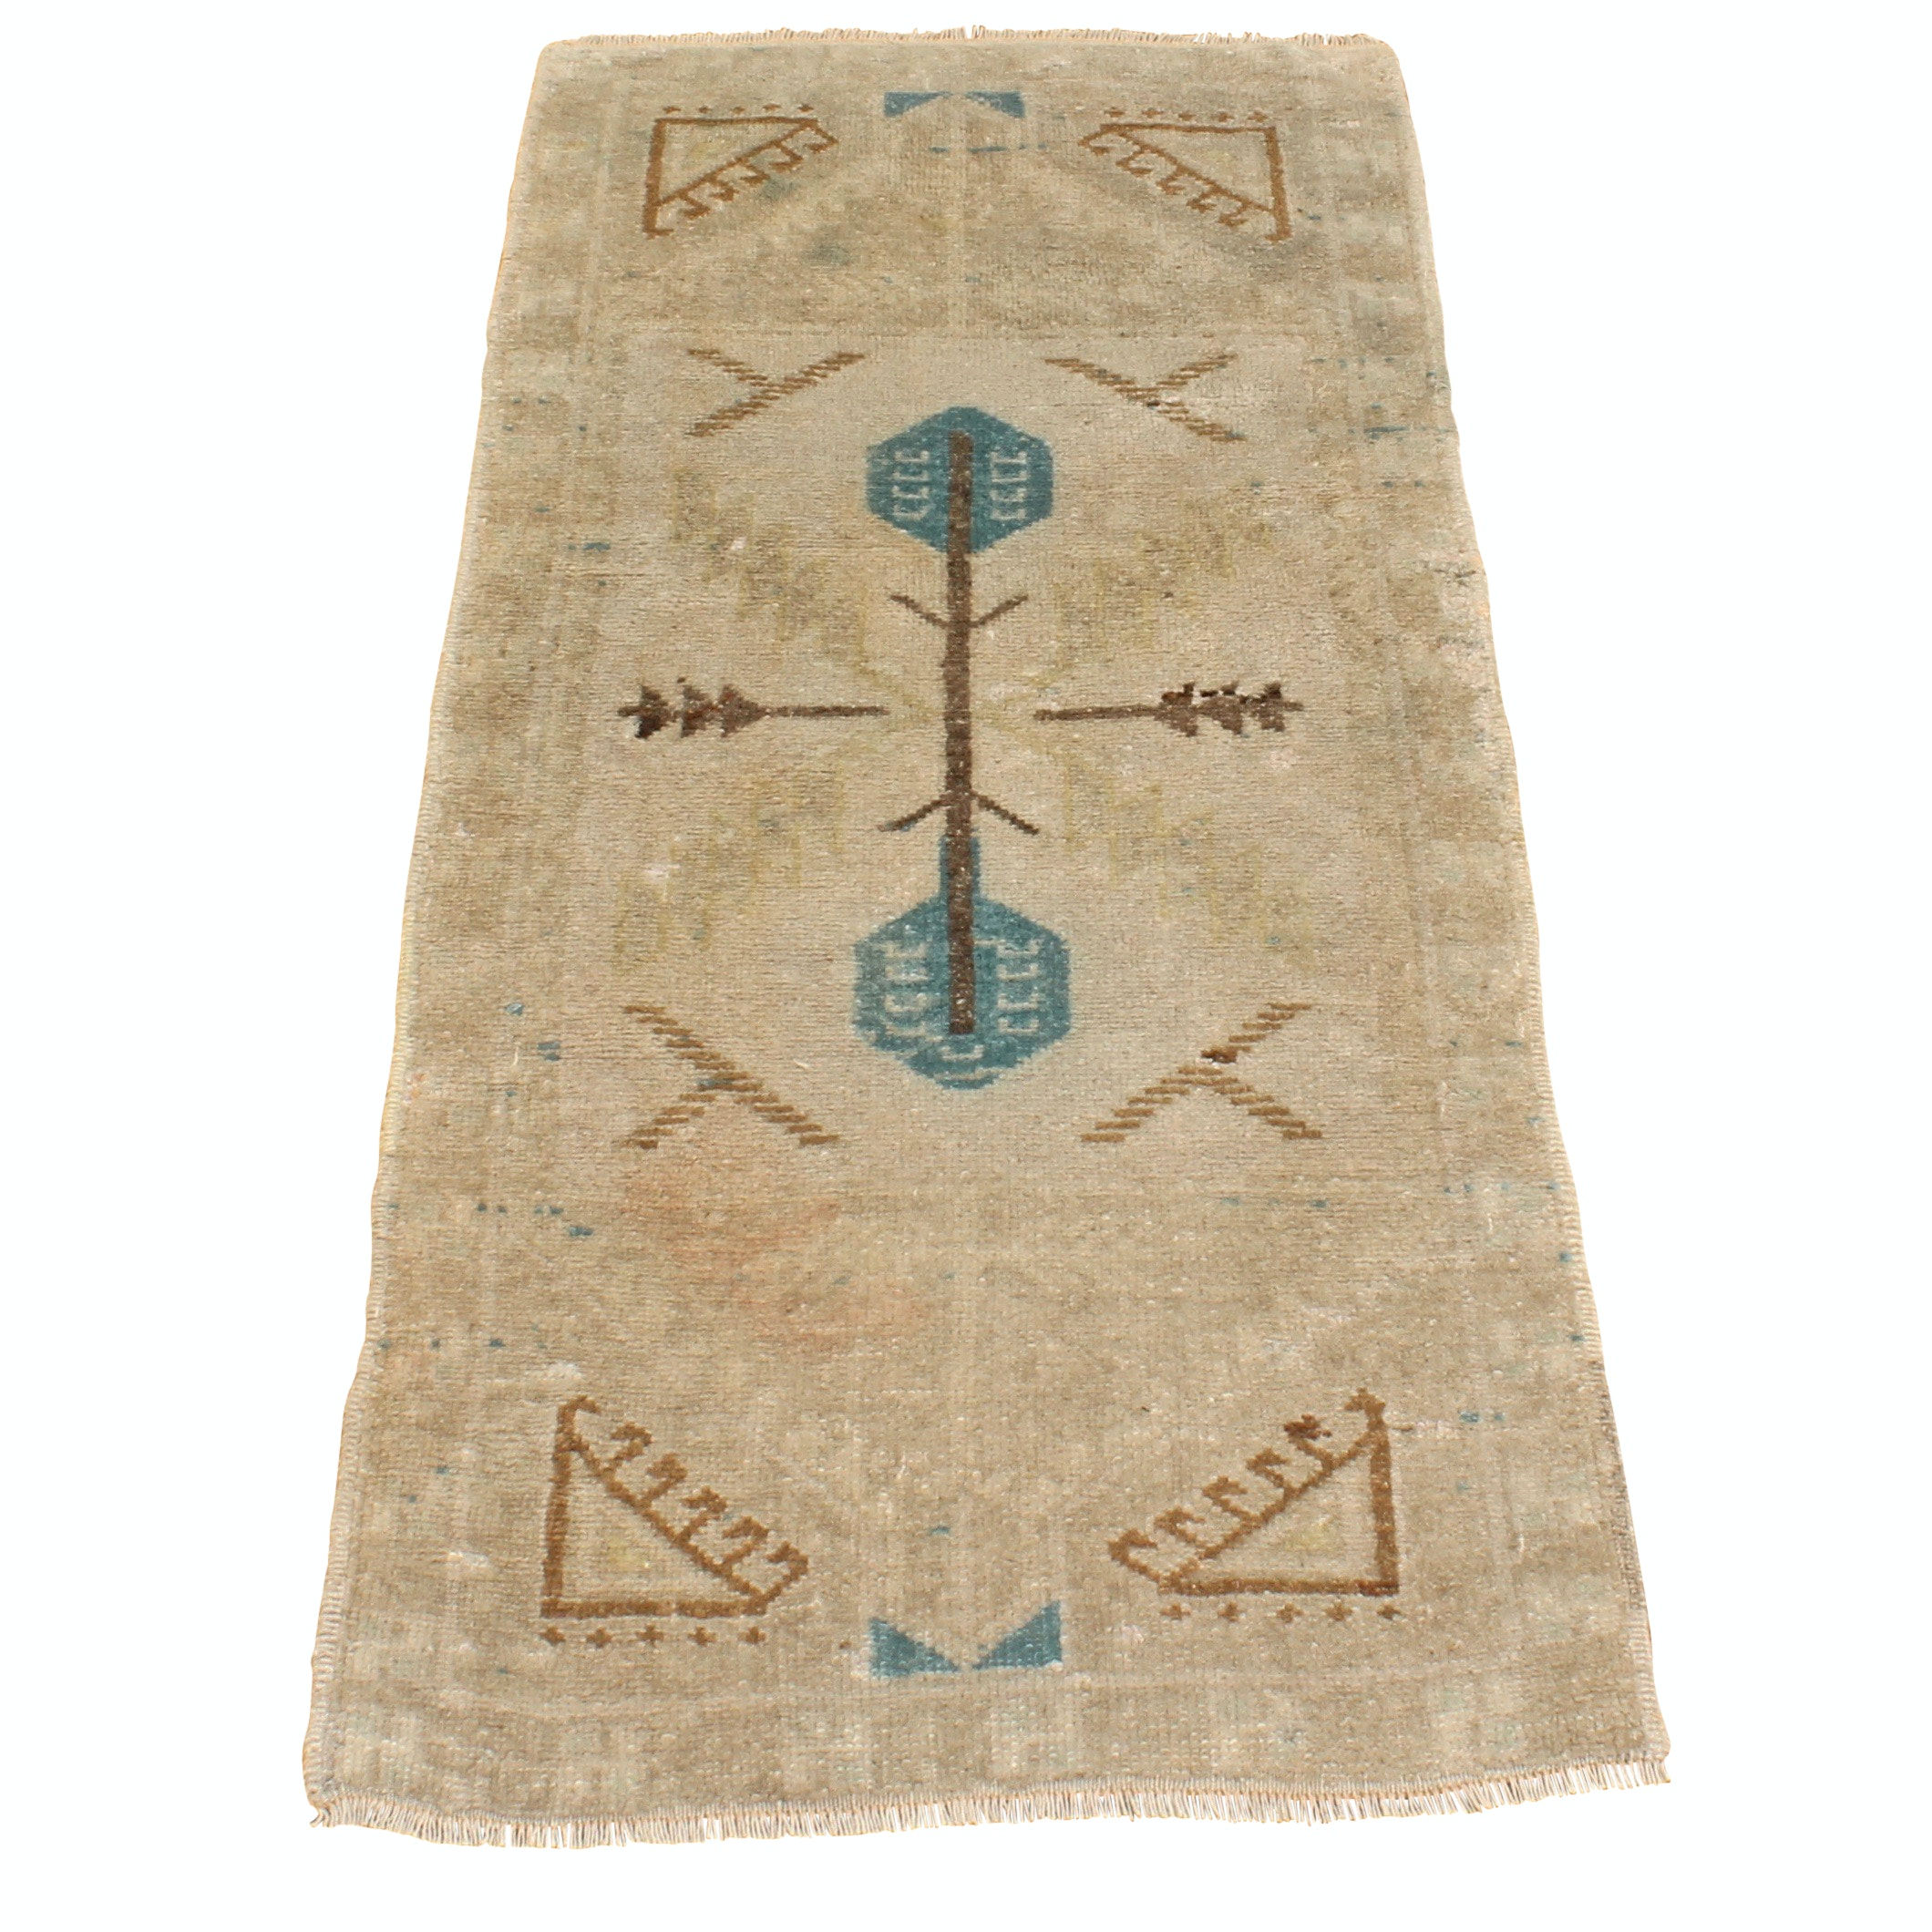 Semi-Antique Hand-Knotted Tribal Anatolian Wool Area Rug